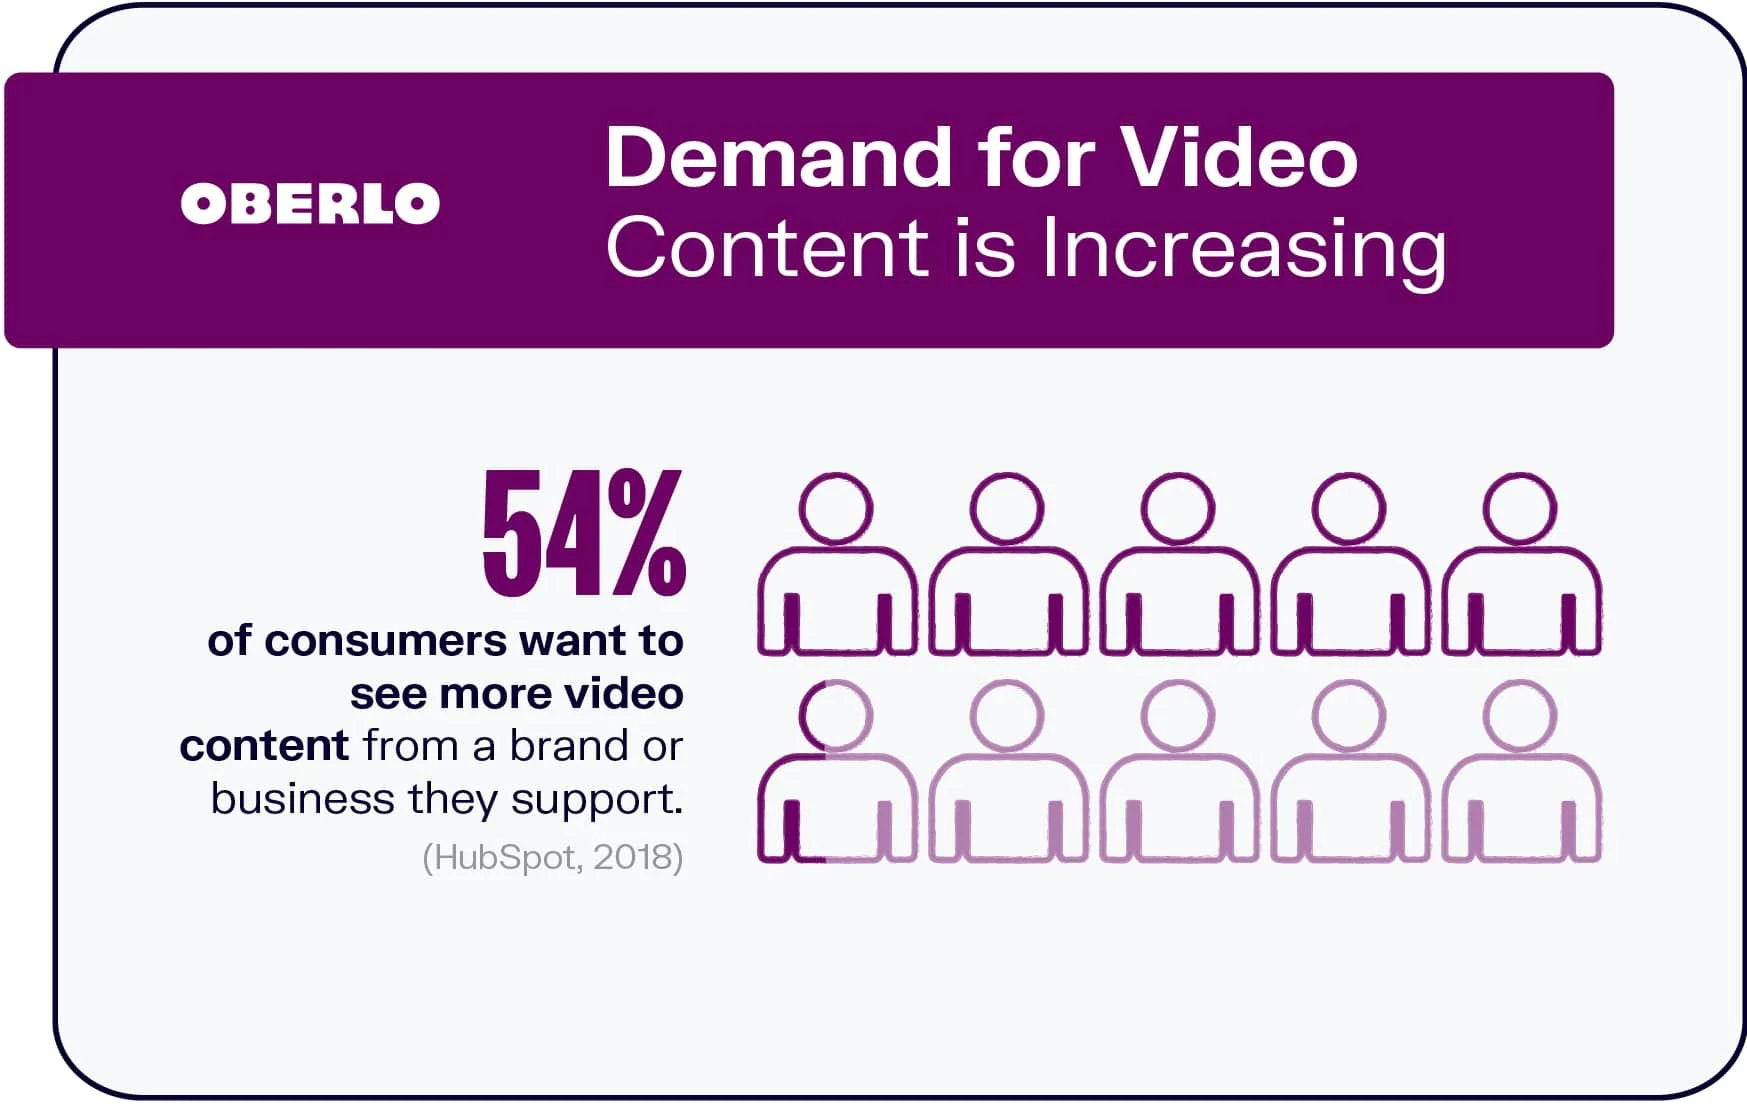 video content's demand is increasing